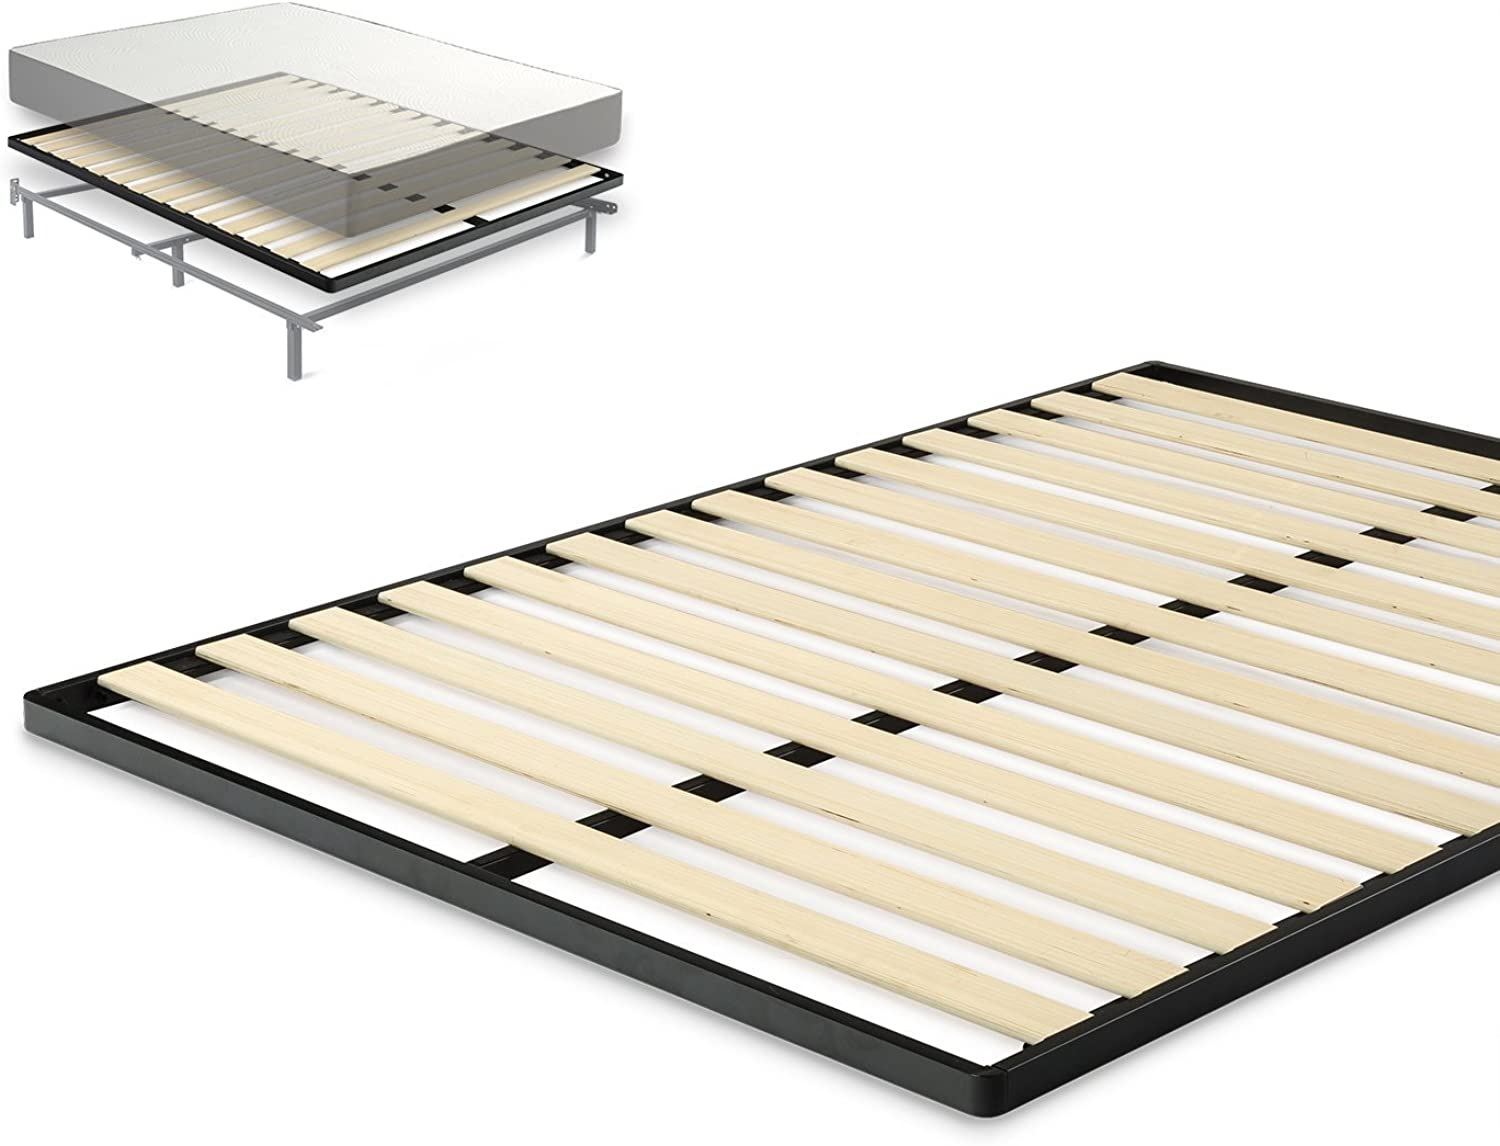 Zinus OLB-QLBKW-F Easy Assembly Wood Slat 1.6 Inch Bunkie Board   Bed Slat Replacement, Full